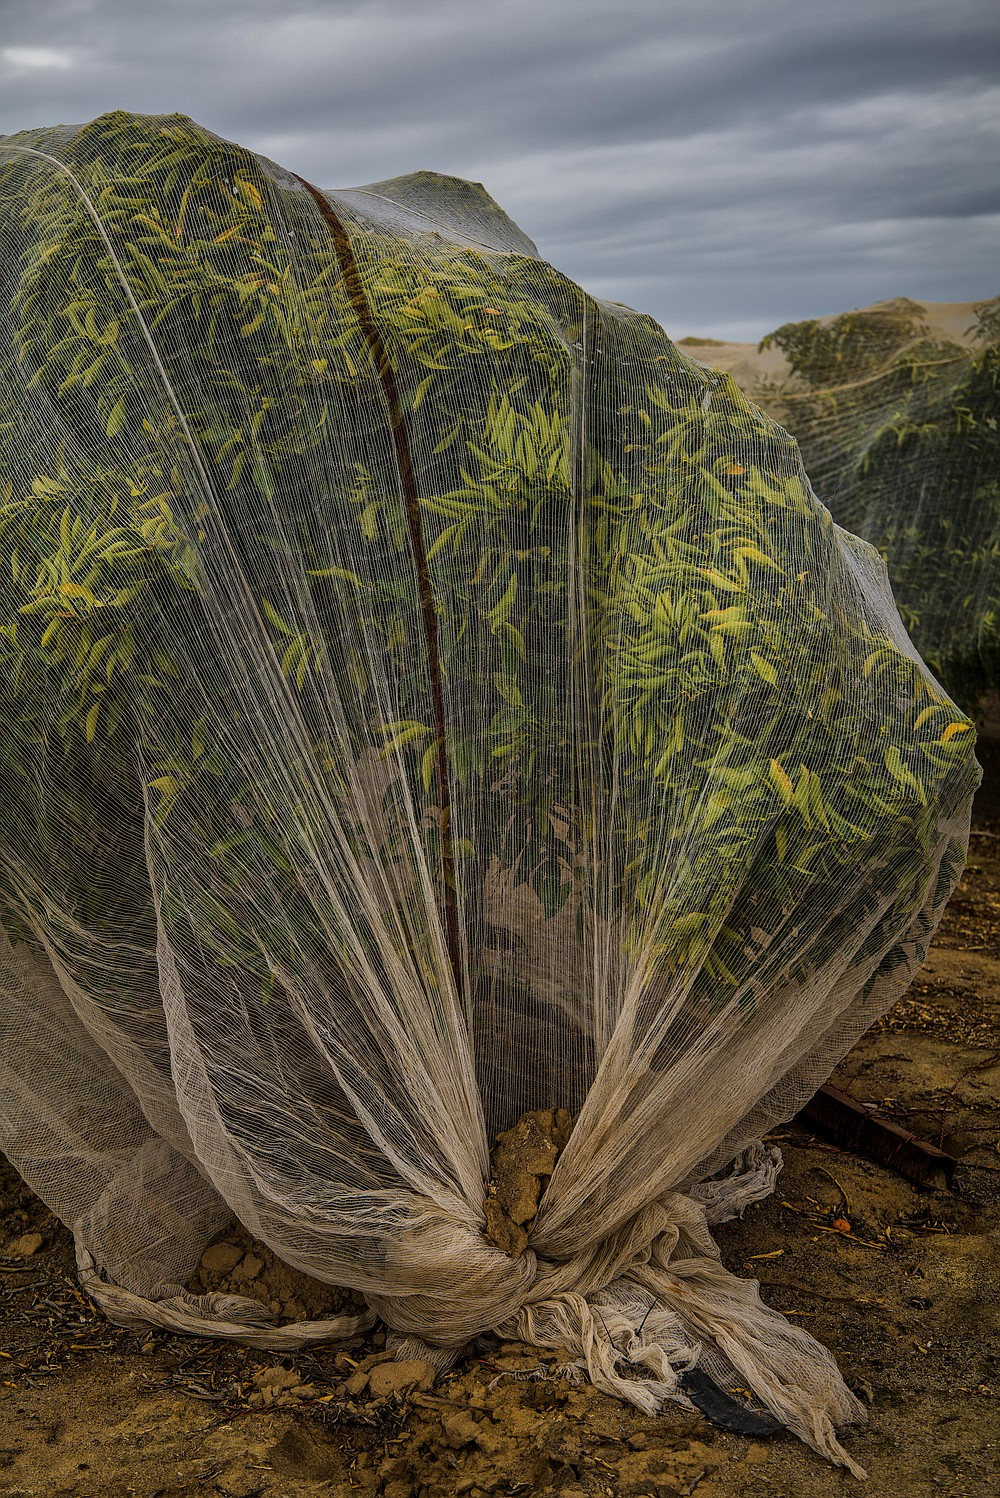 Mosquito nets on almond trees at a farm in Selma, Calif., March 18, 2021. In California, a young generation of Sikh farmers has agricultural roots that stretch back 900 years. (Ryan Christopher Jones/The New York Times)